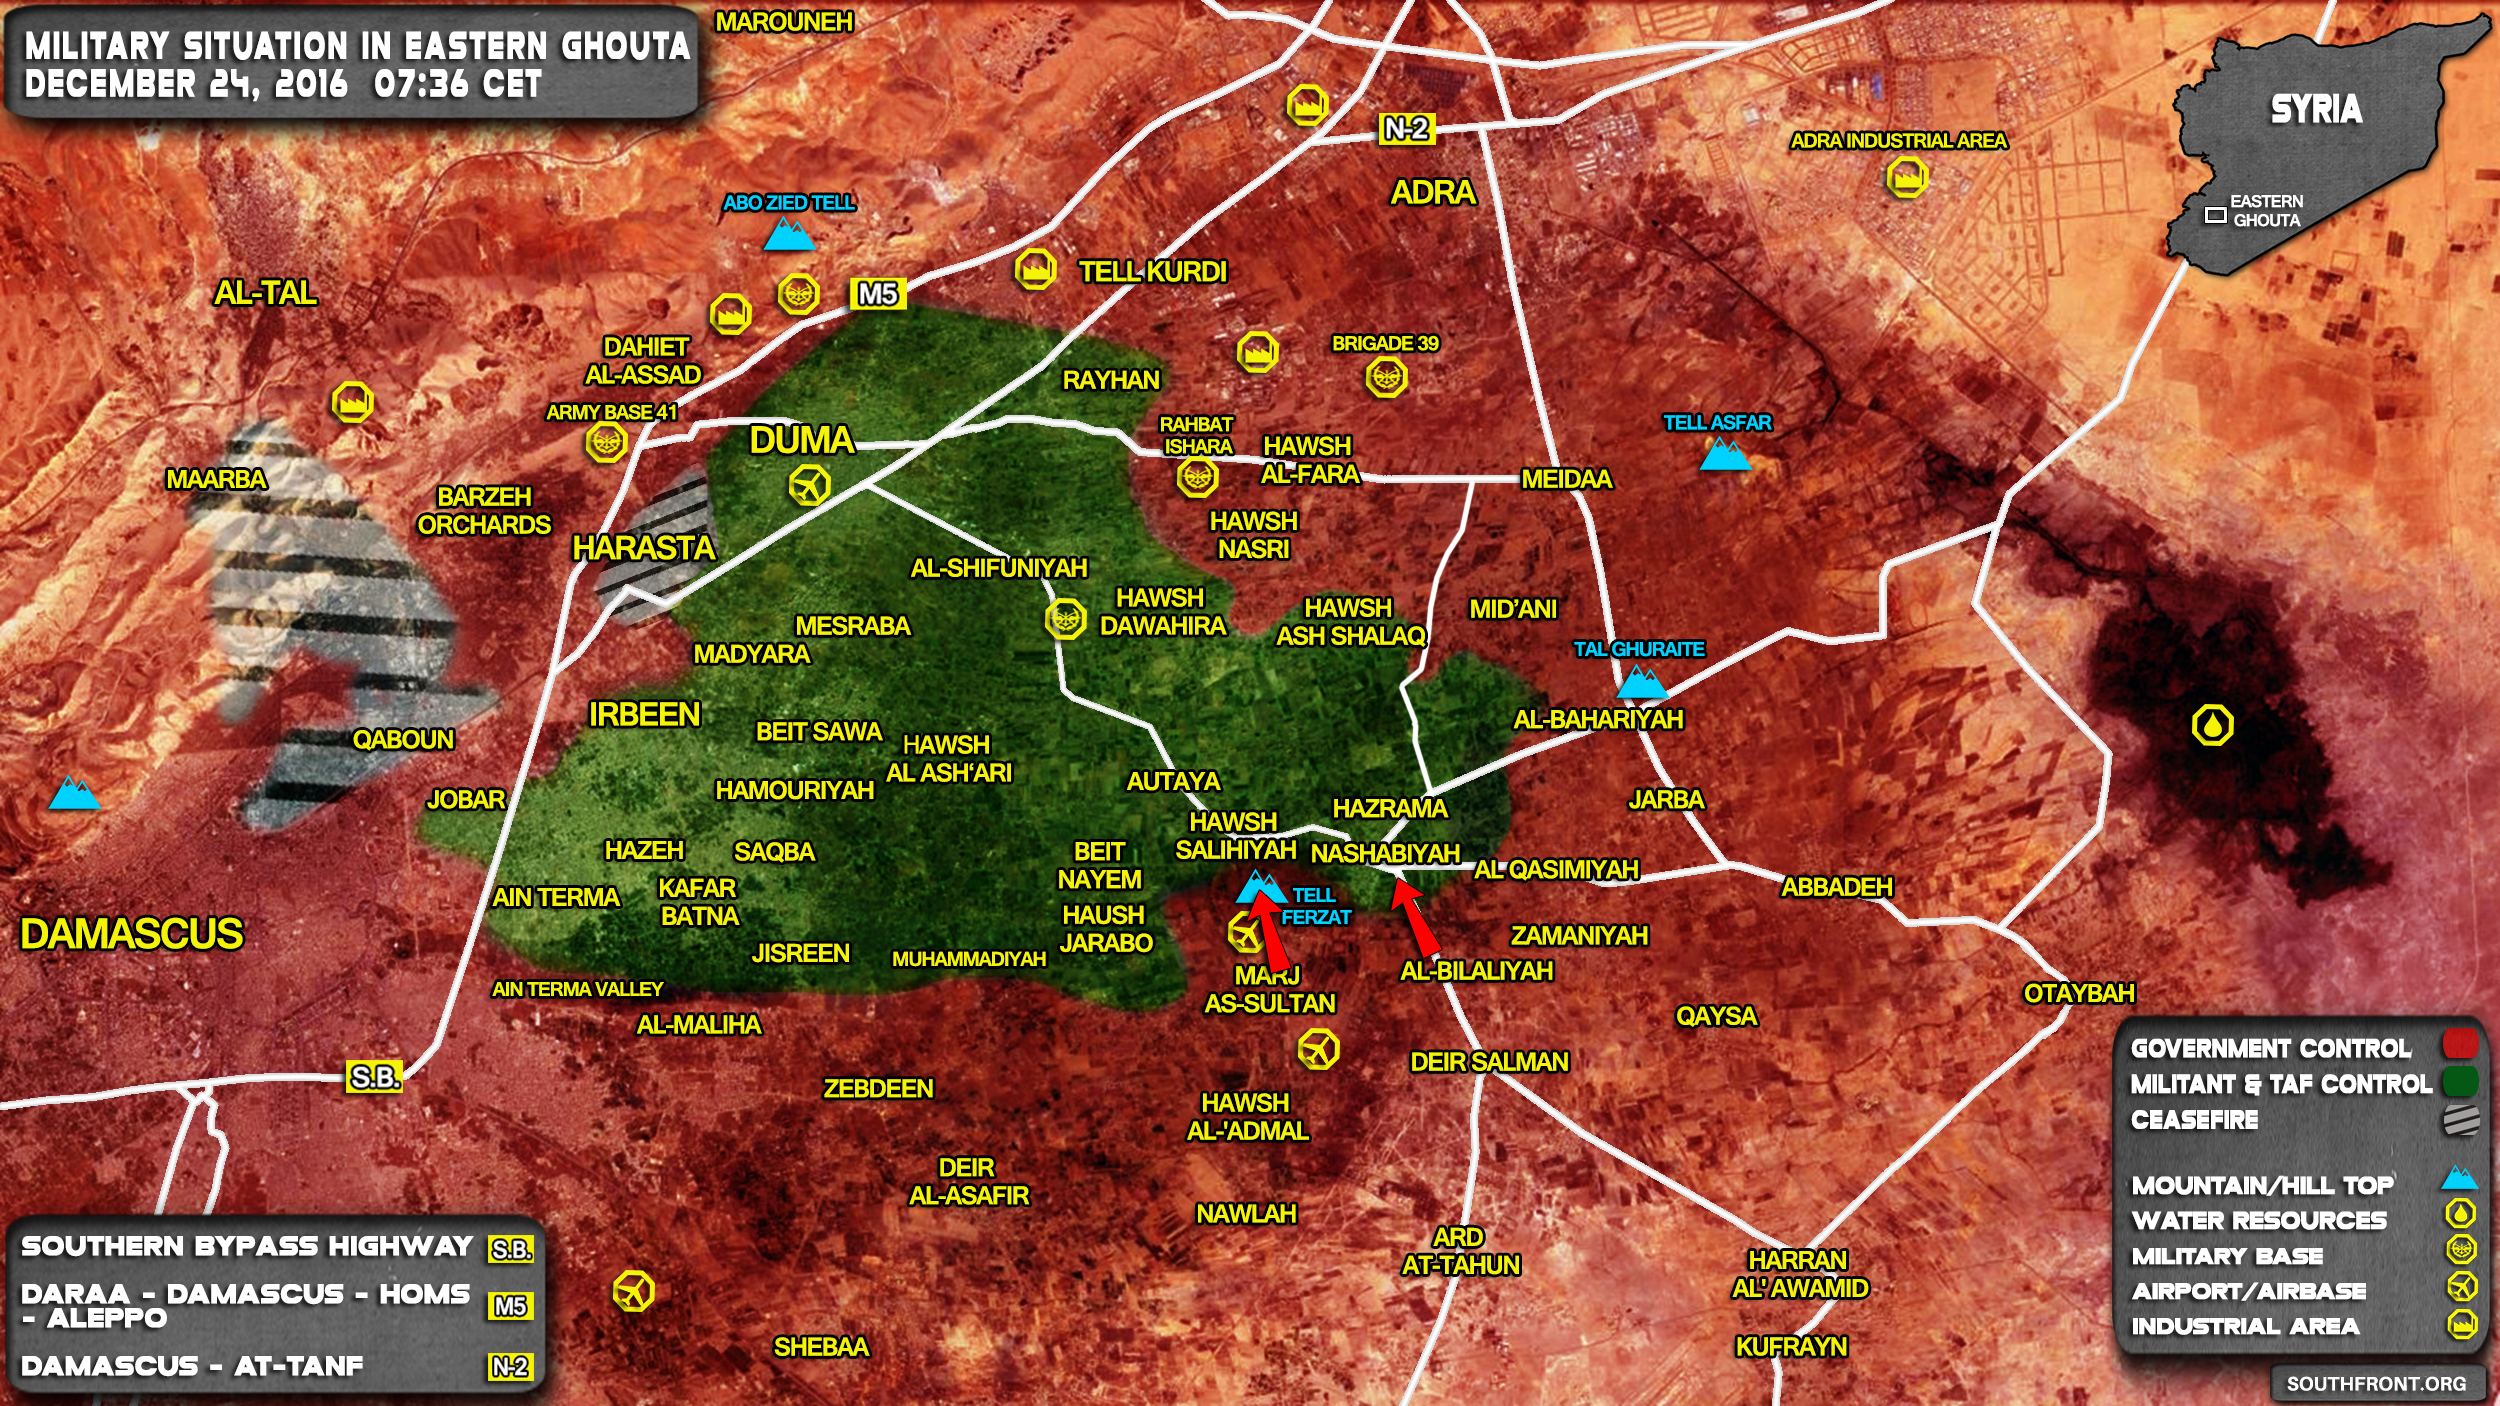 Military Situation In Eastern Ghouta On December 24 2016 Syria – Eastern Map